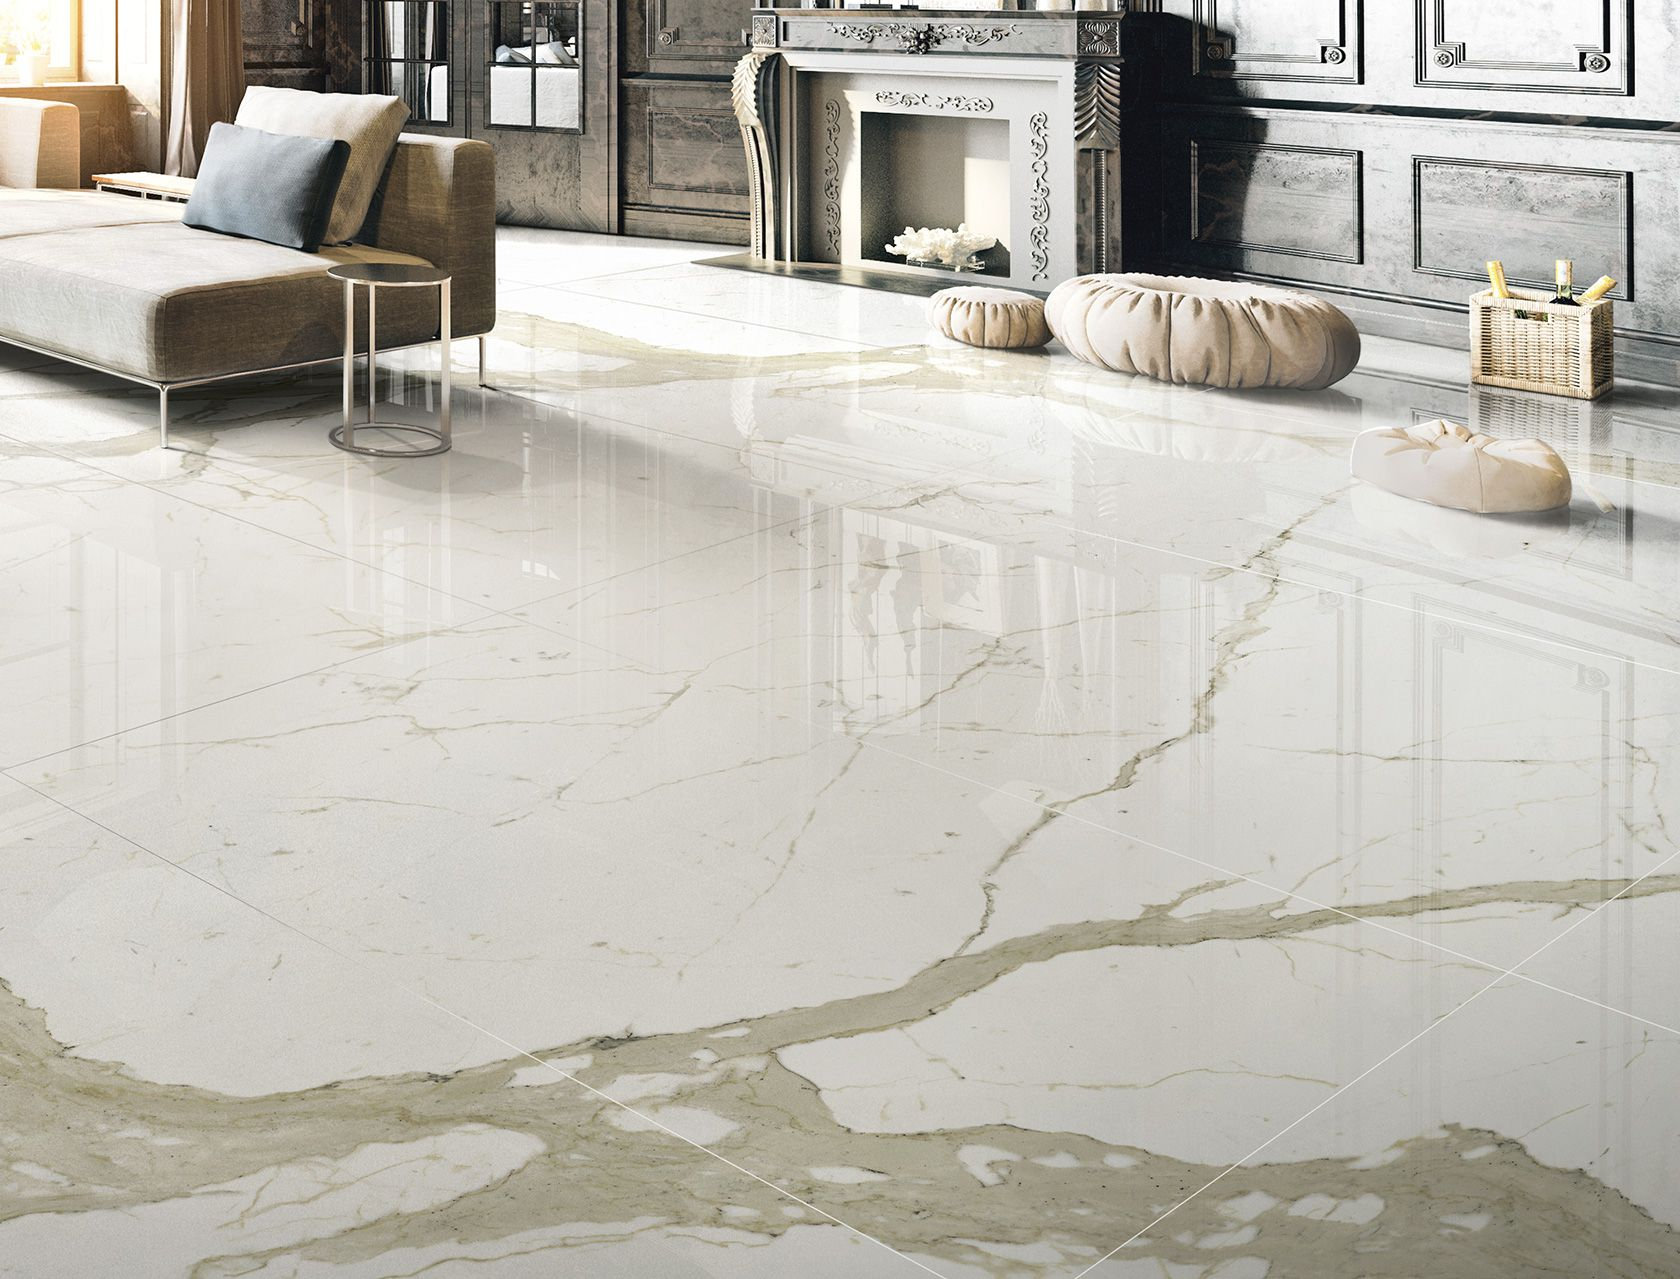 Piastrelle Marmo System Bianco Calacatta Marmi Cento2cento White Marble Effect Floor And